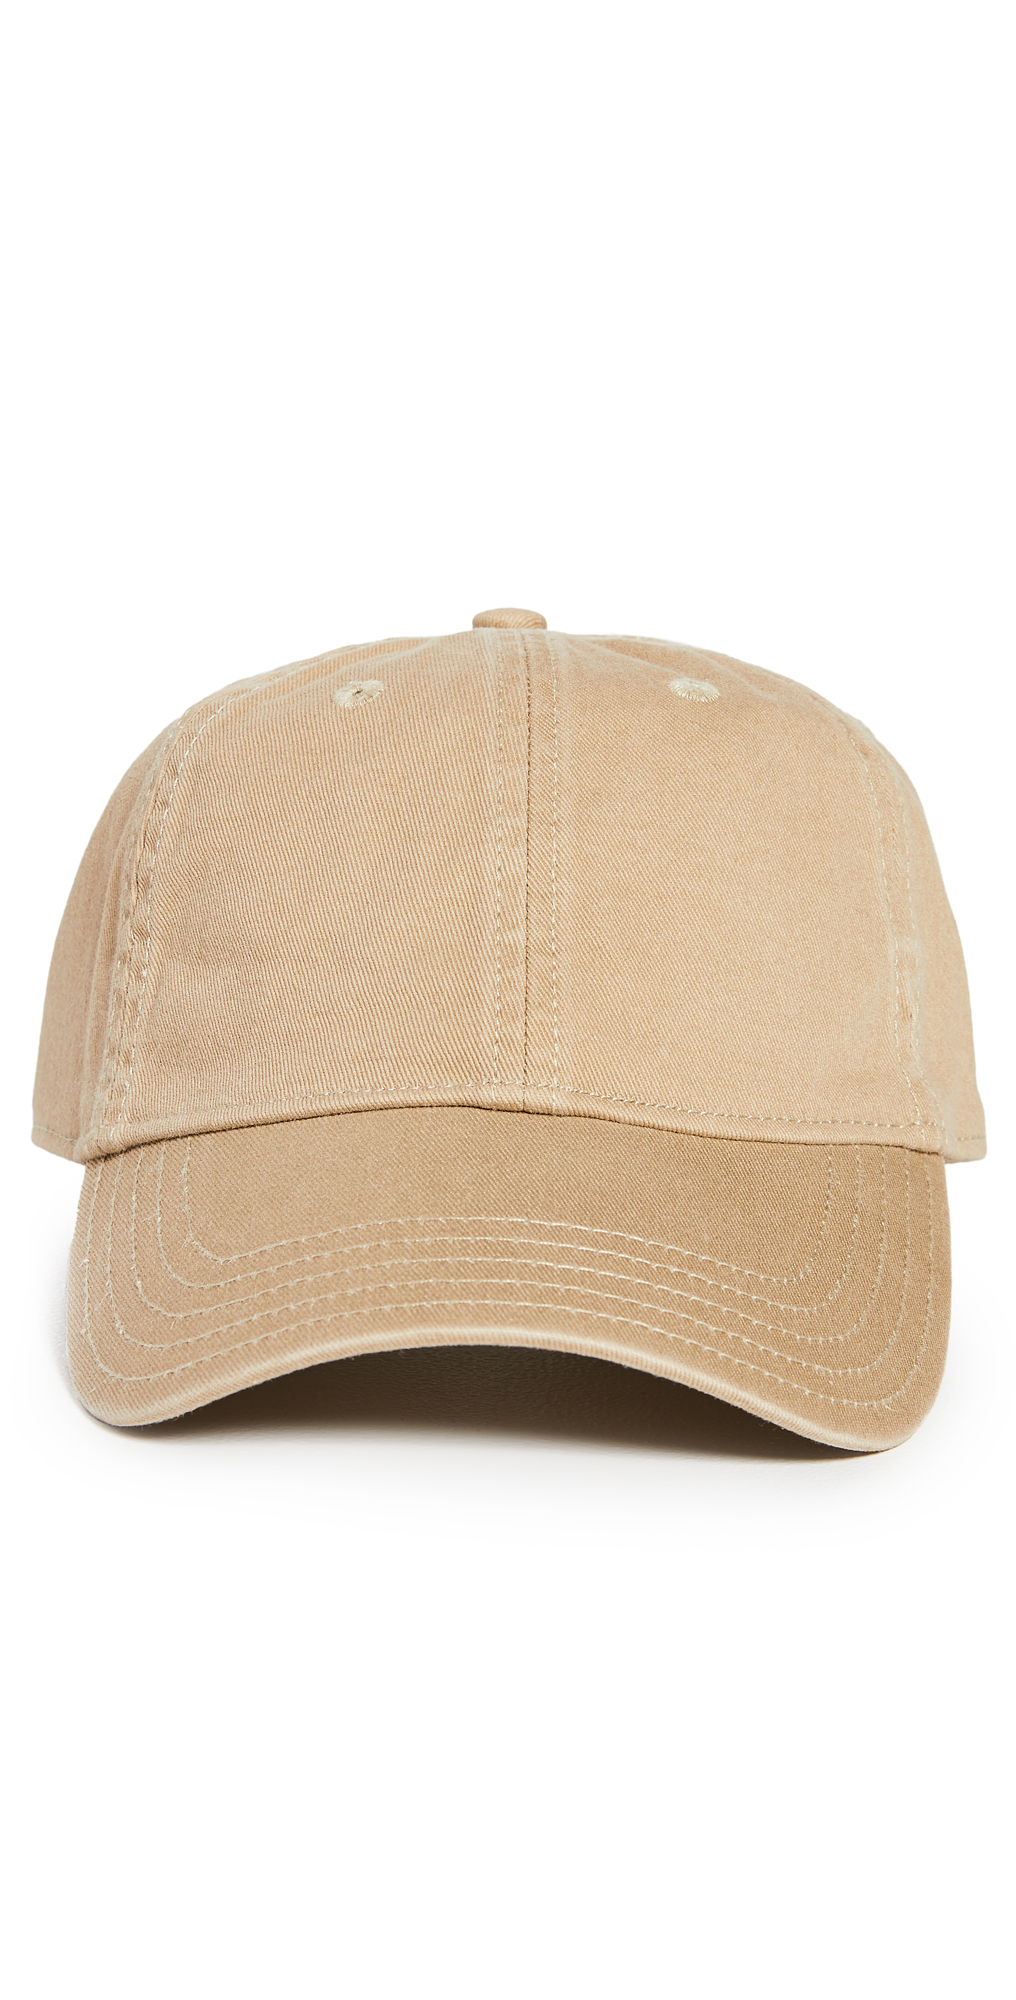 Madewell BROKEN IN BASEBALL HAT